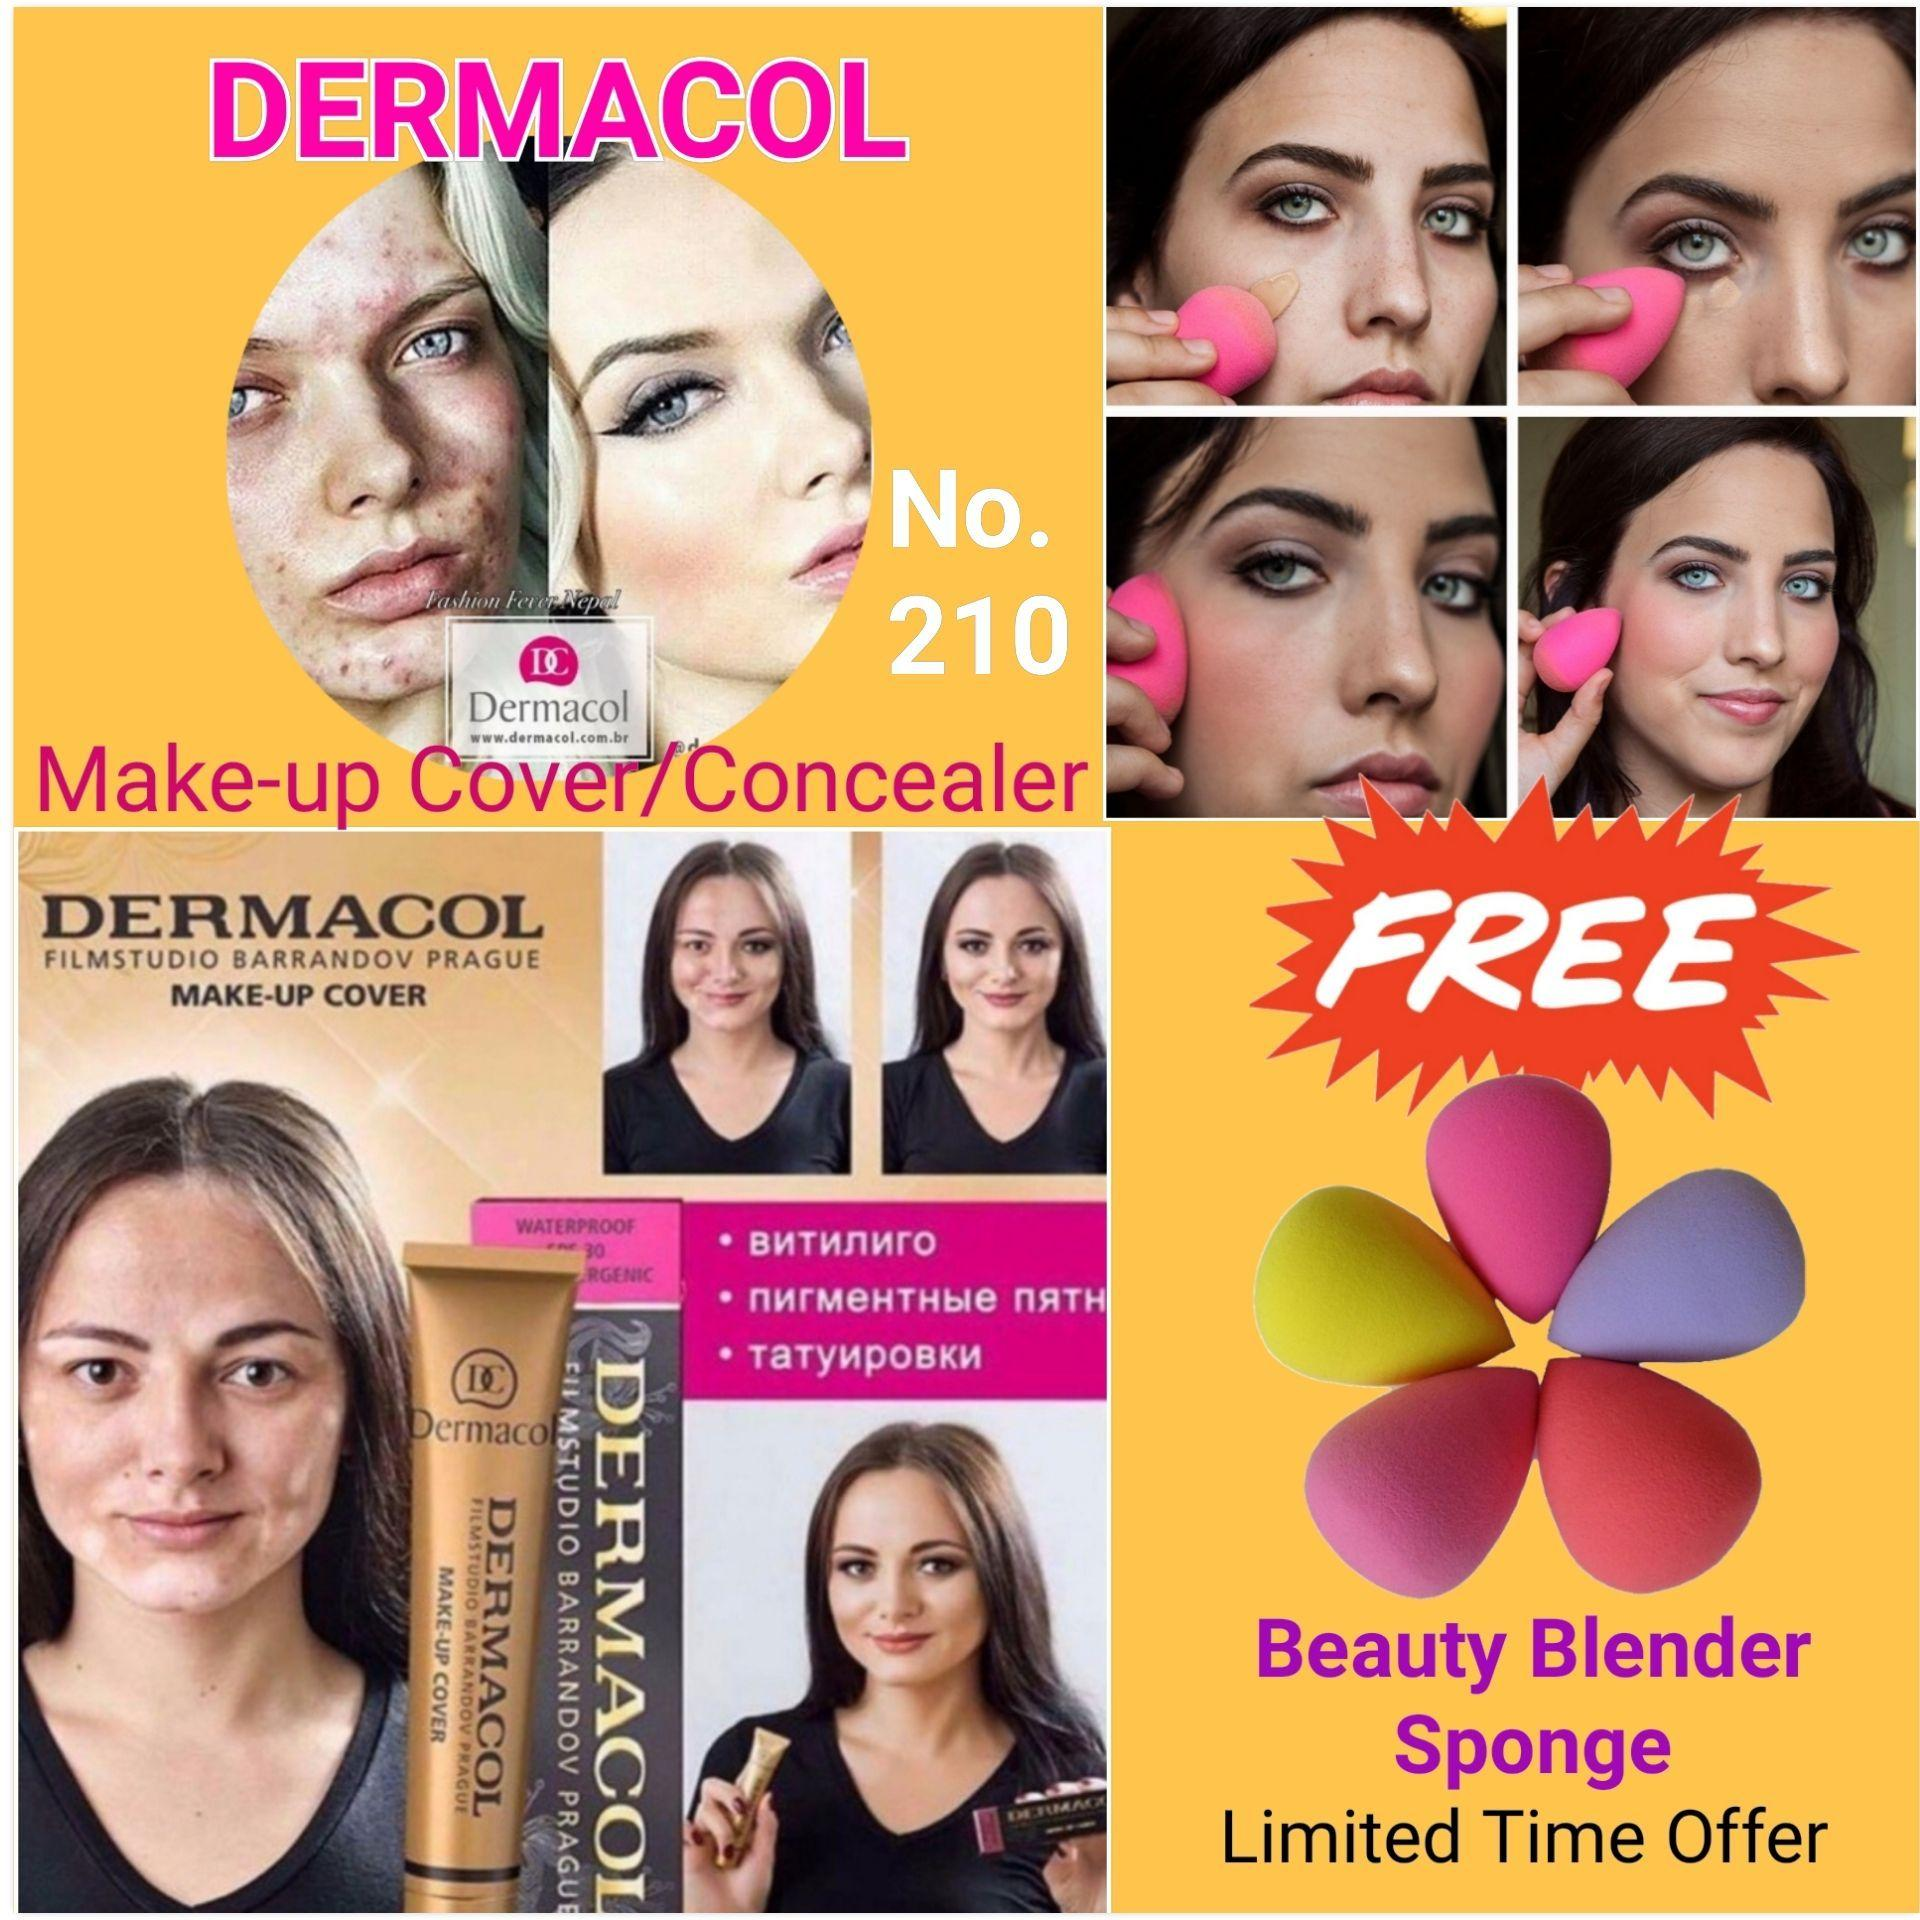 Dermacol Make up Cover/Foundation (#210) FREE Beauty Blender Sponge Philippines